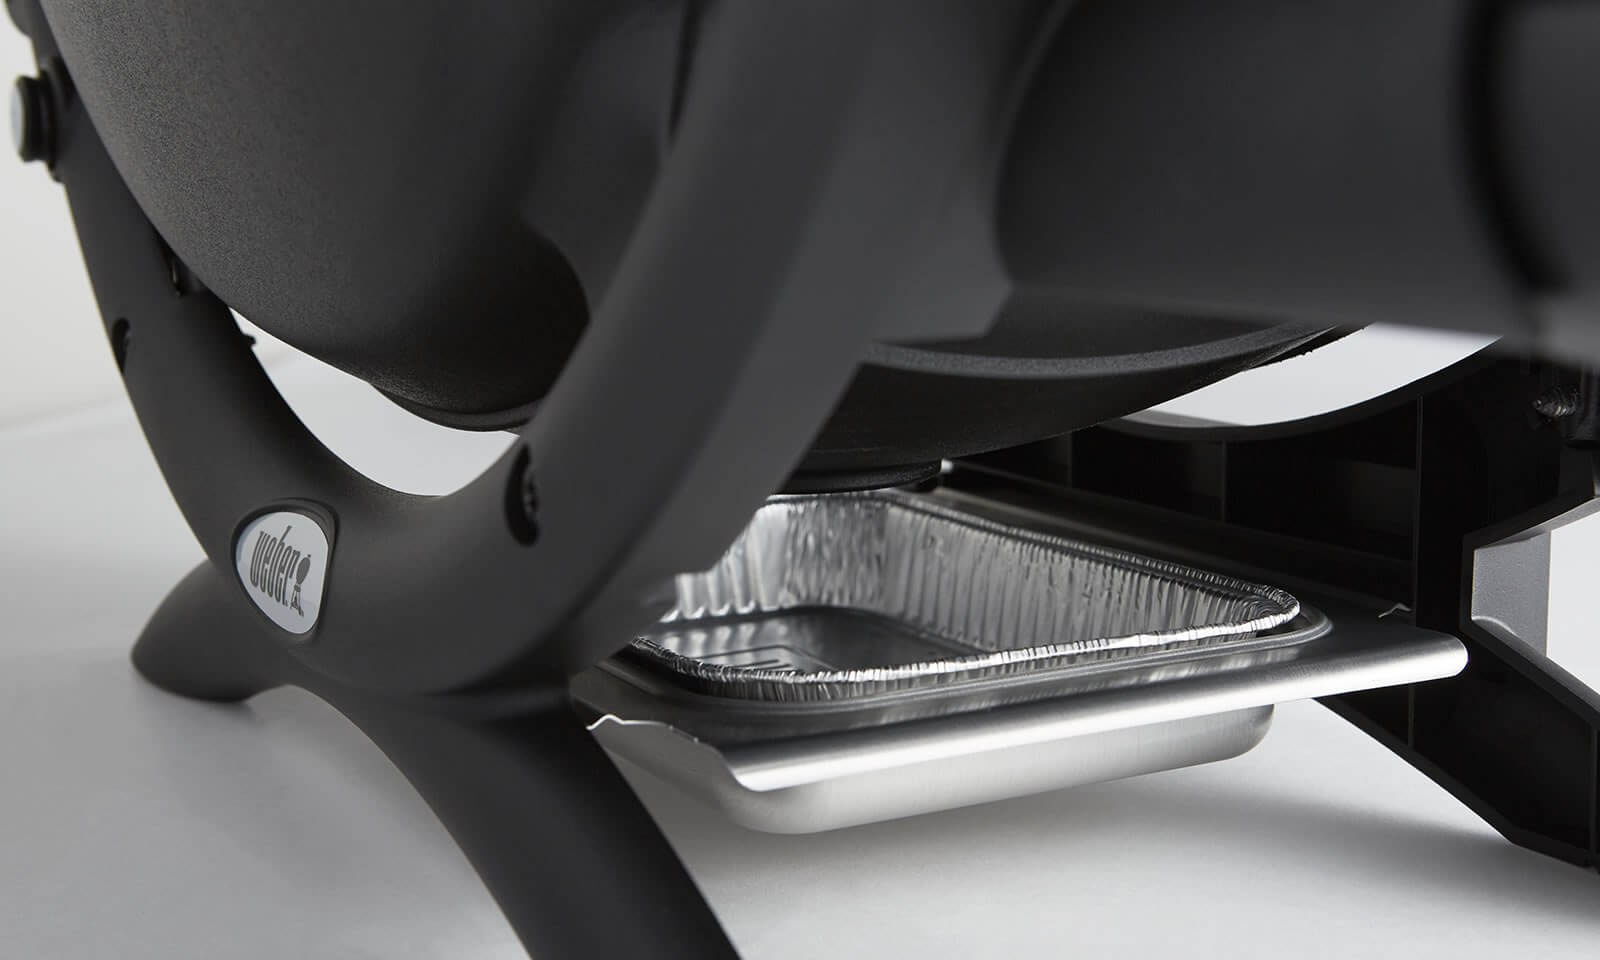 Removable catch pan